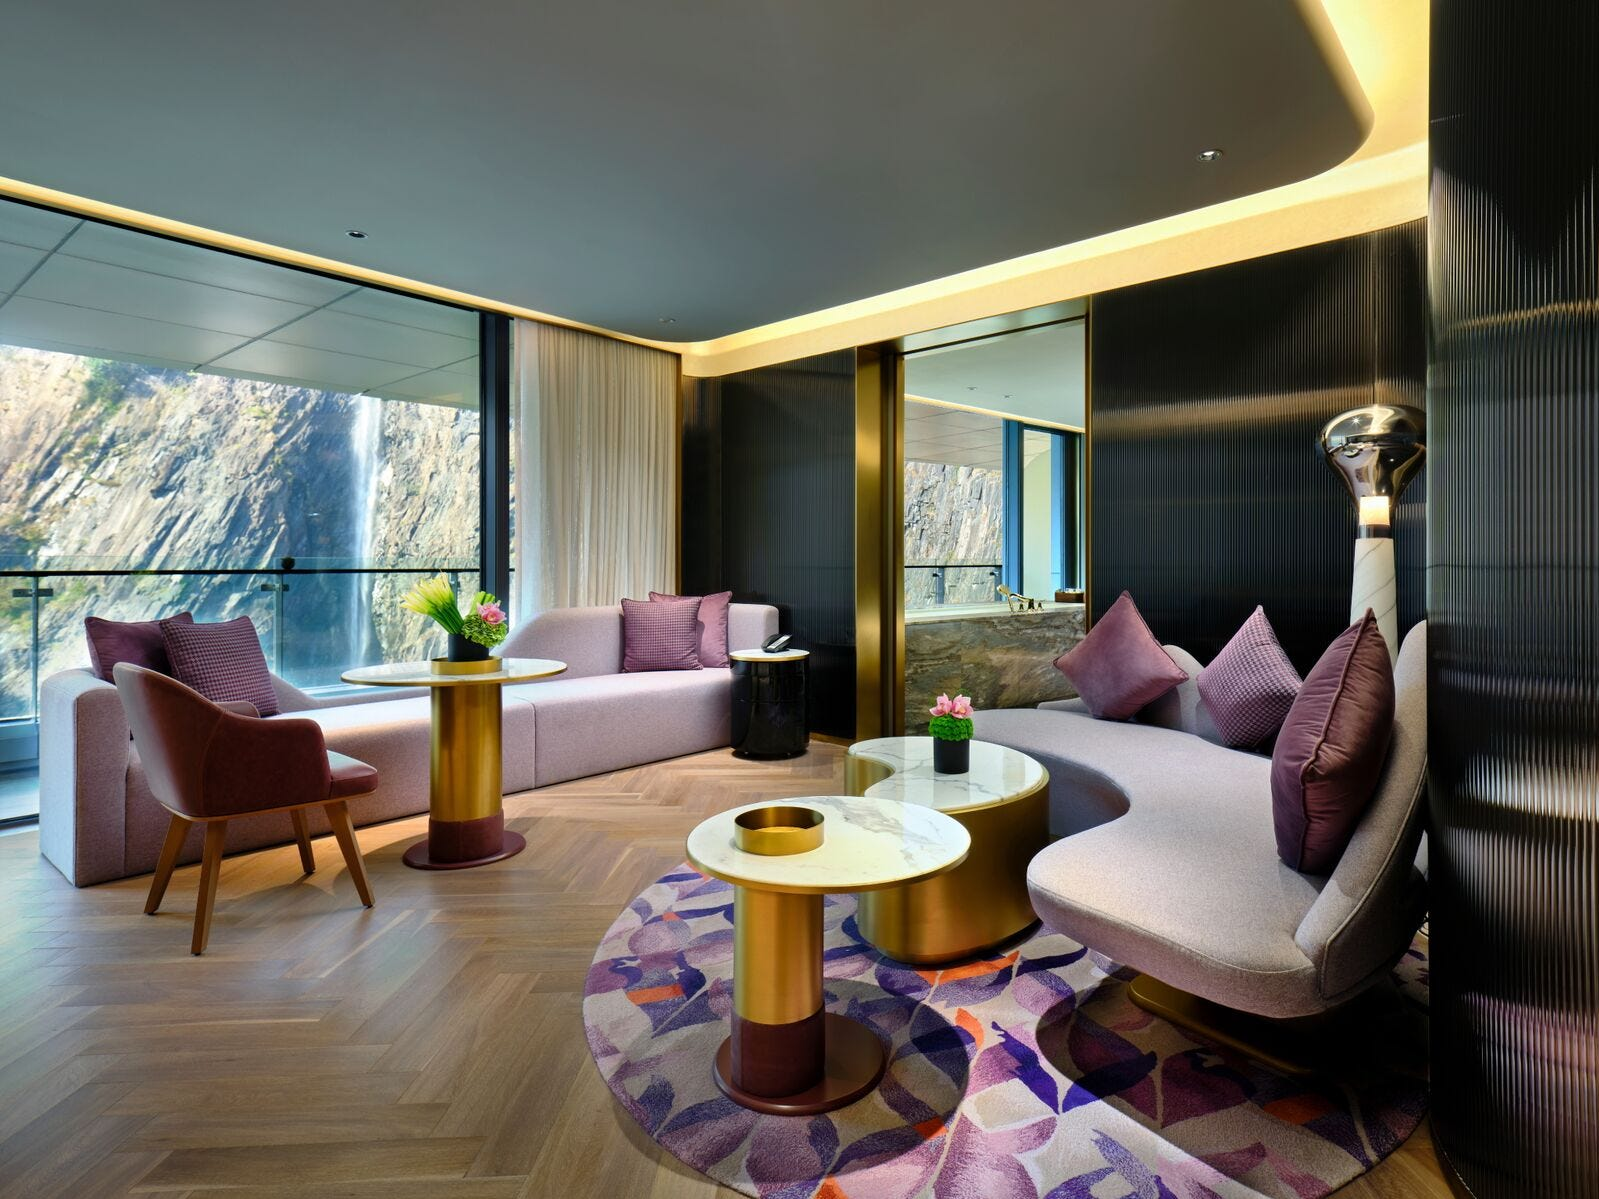 Some of the bigger suites have excellent views of the waterfall on another side of the quarry. They extend living areas with modern decor, which (like in the rest of the rooms here) come equipped with power outlets and USB ports by the sofas or lounge chairs.